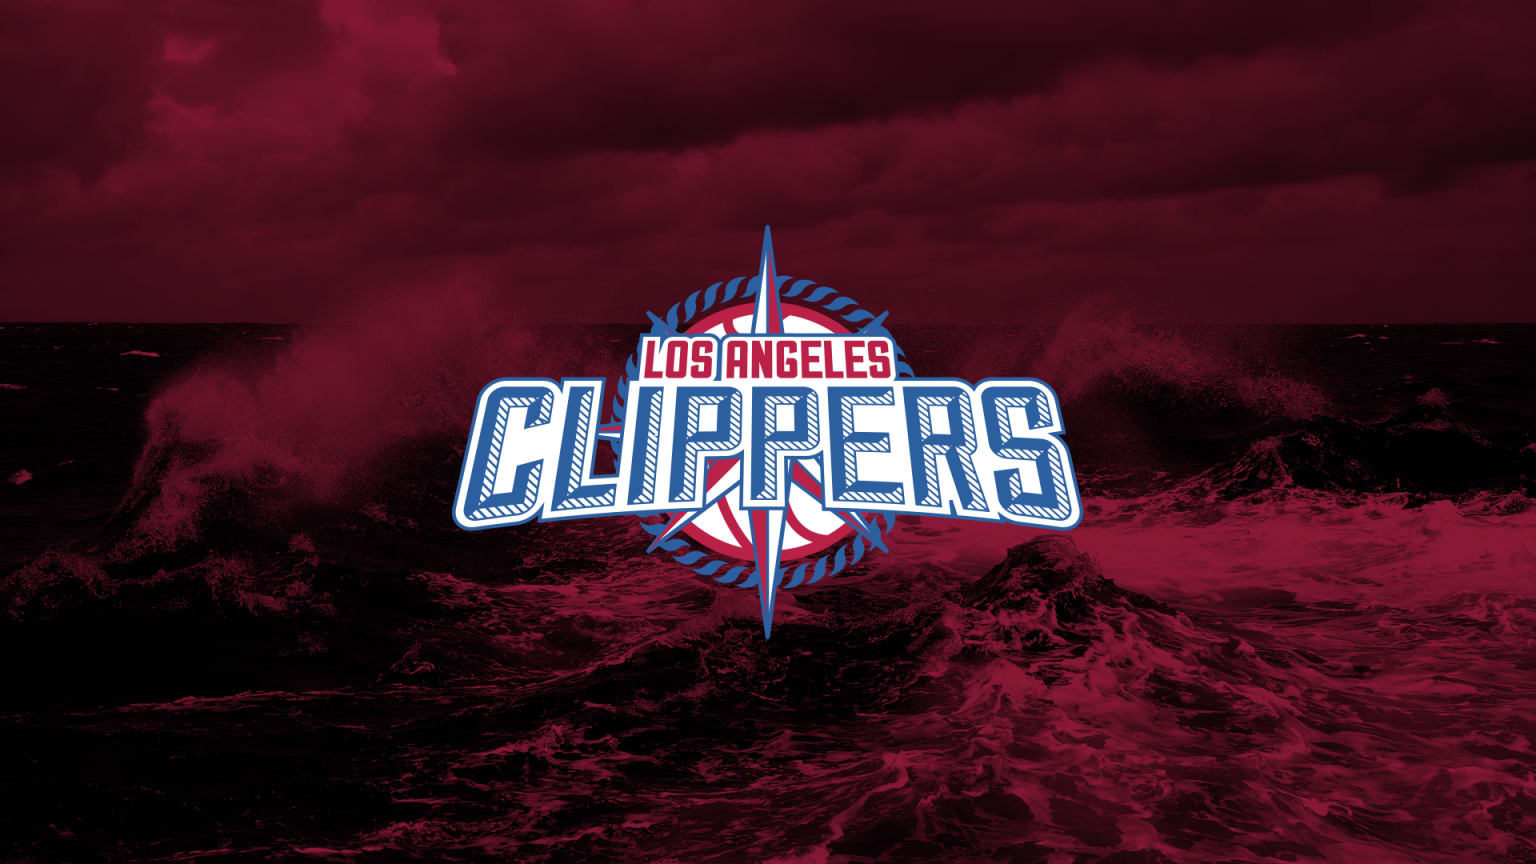 Los Angeles Clippers Logo Redesign